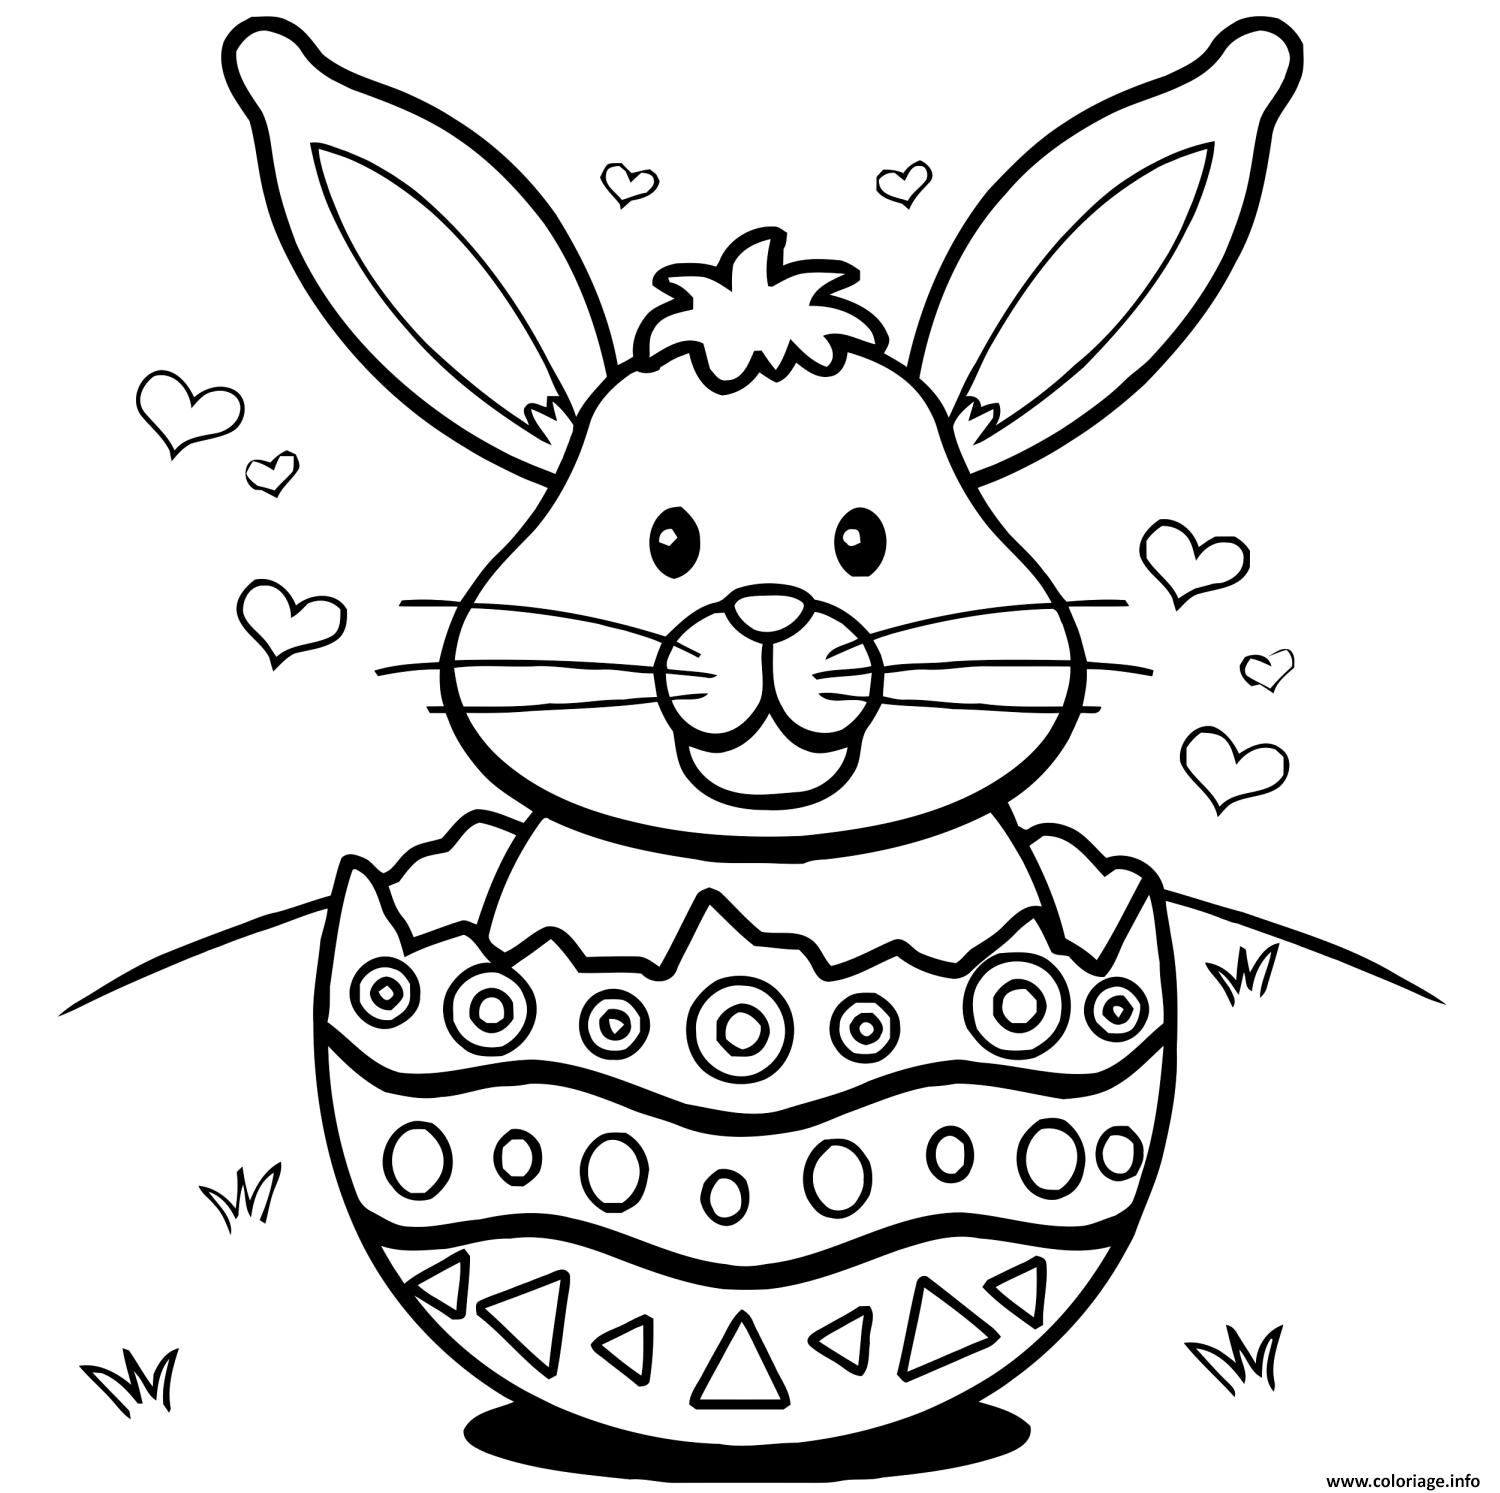 coloriage lapin de paques oeufs coeurs dessin. Black Bedroom Furniture Sets. Home Design Ideas